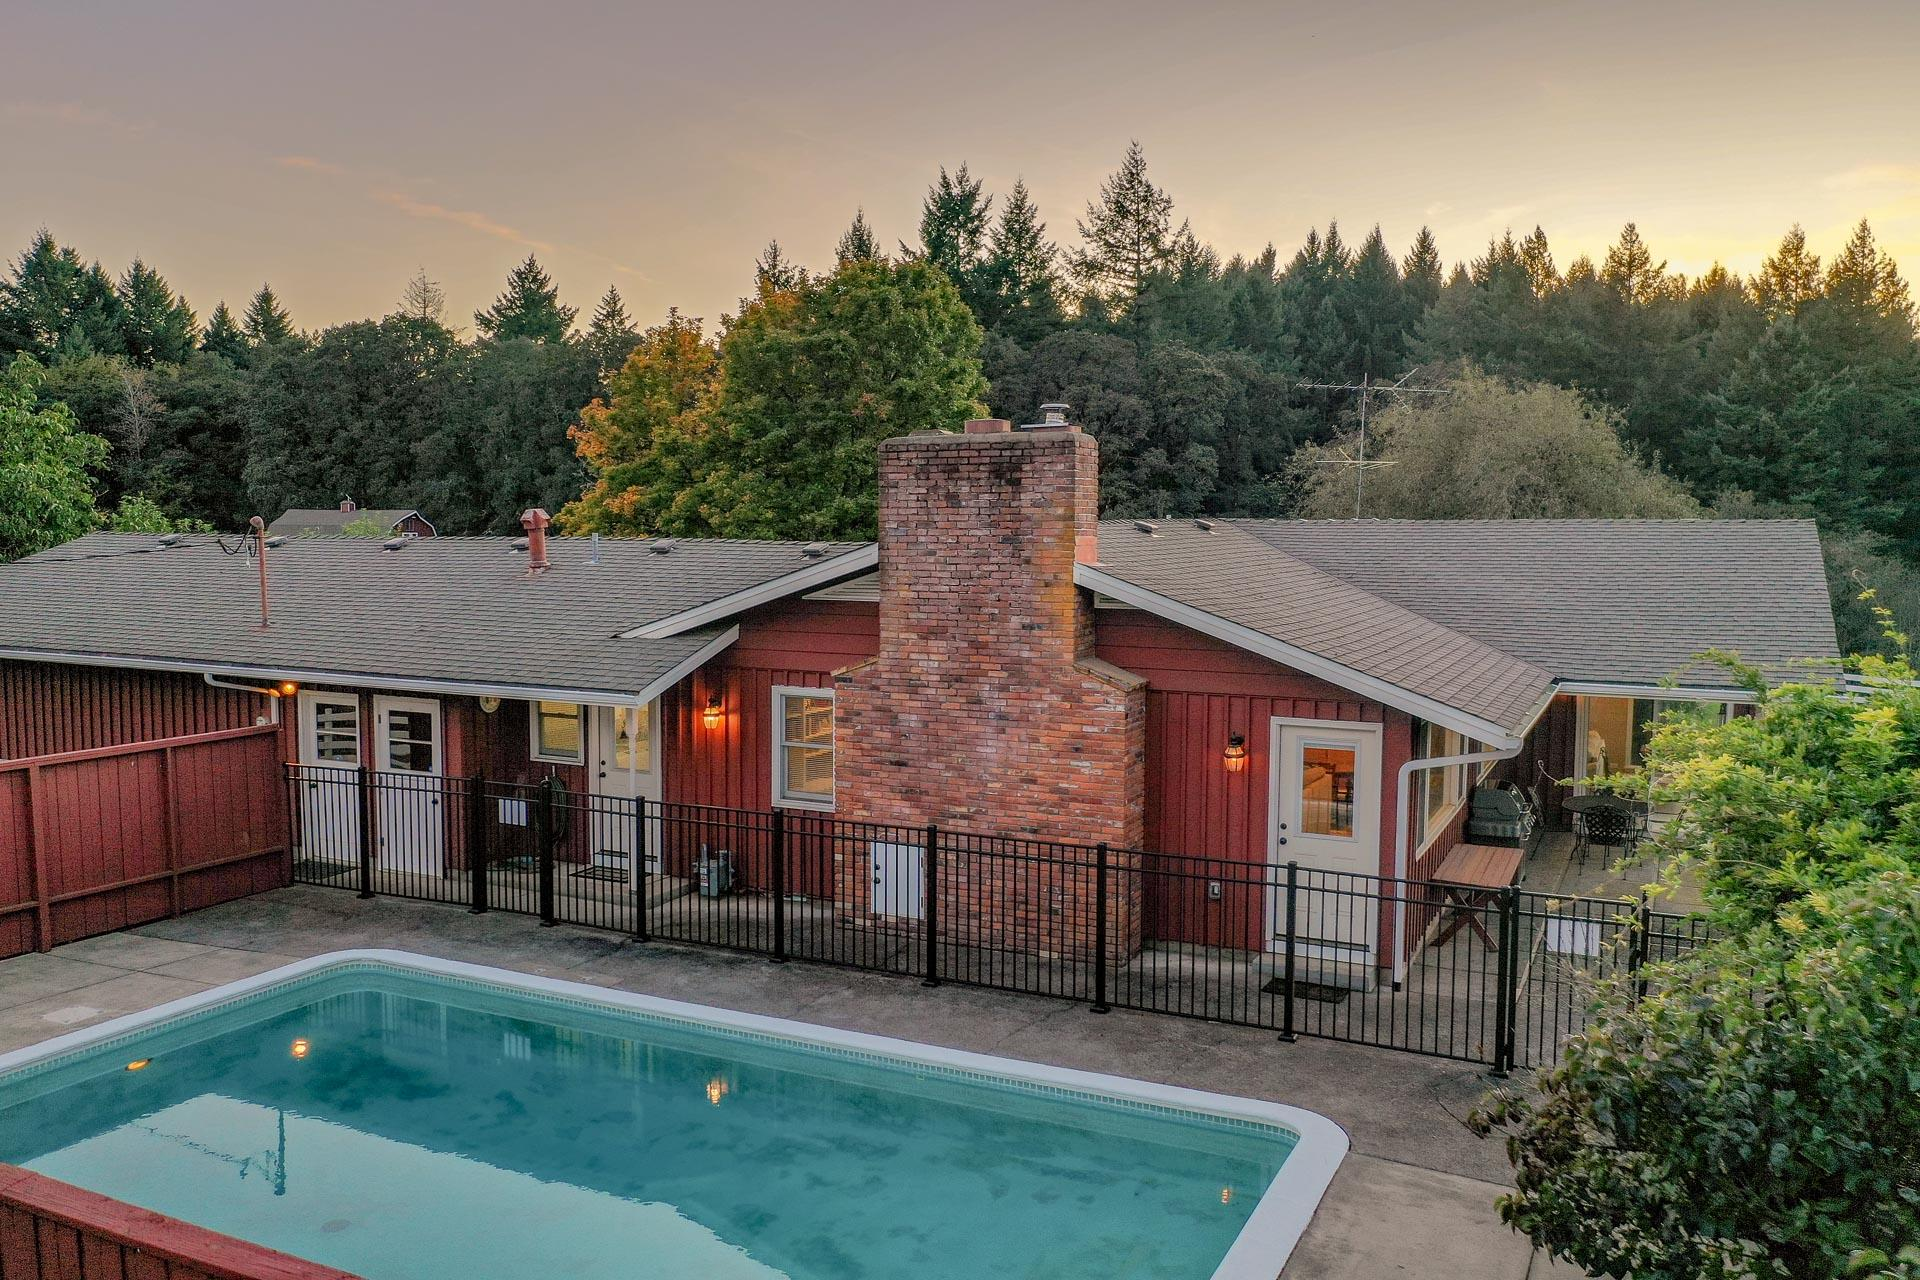 Highland Acres - The backyard has a swimming pool and pergola or entertaining.